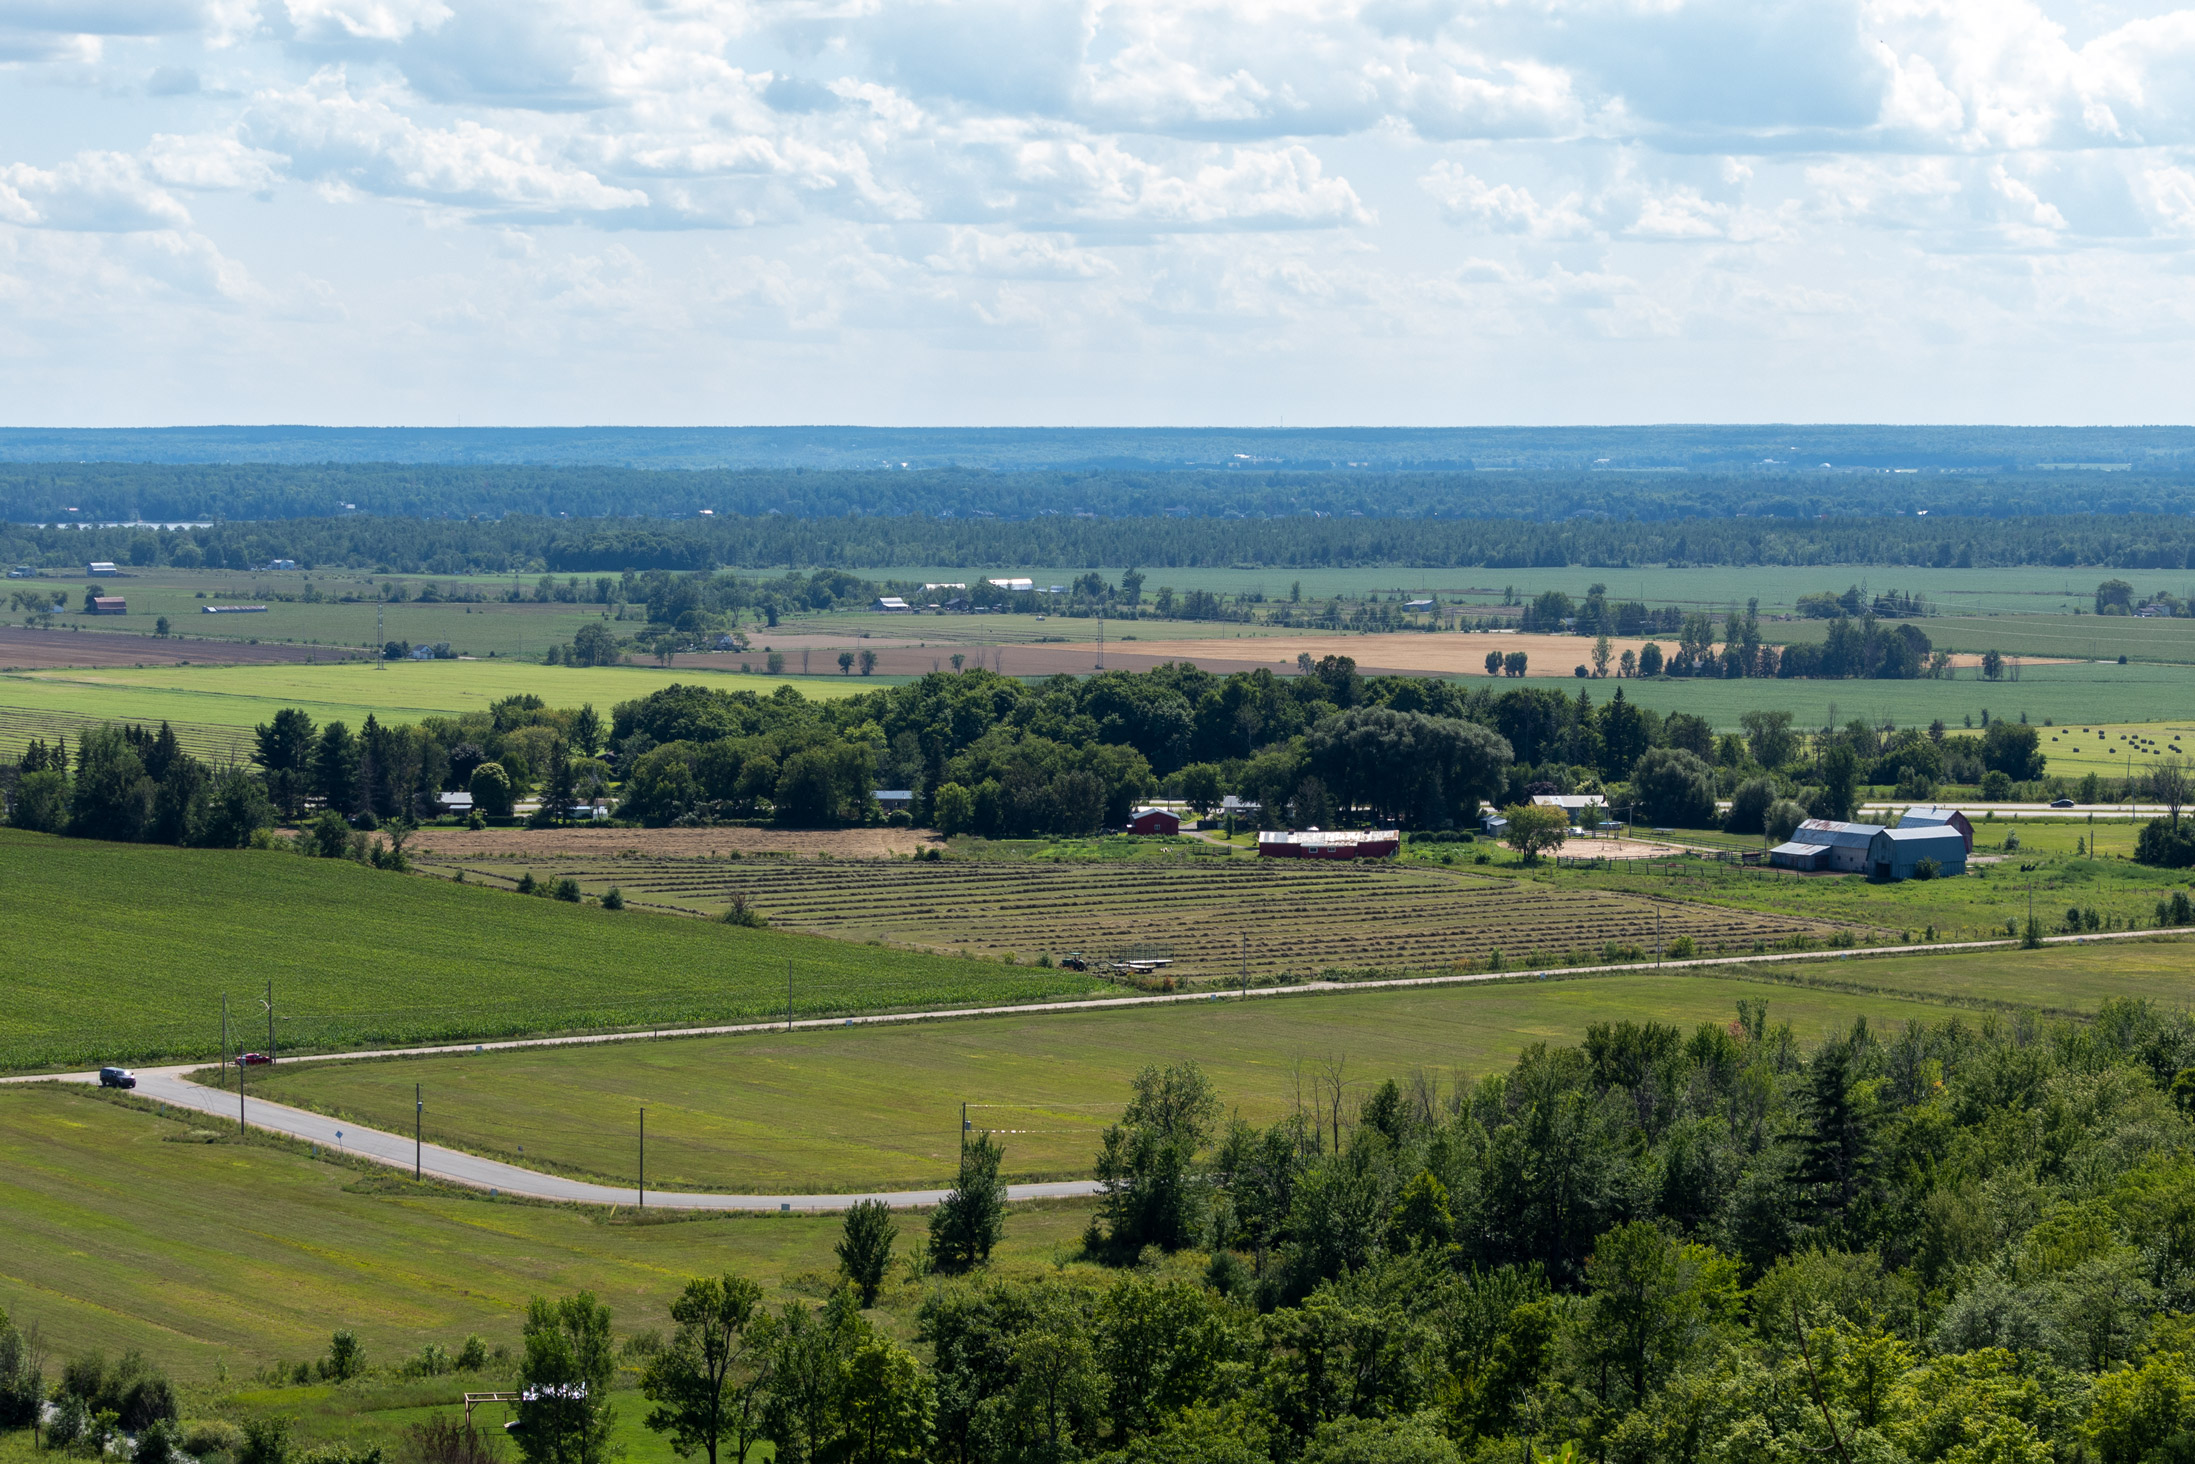 Landscape shot of farmland interspersed with small forests